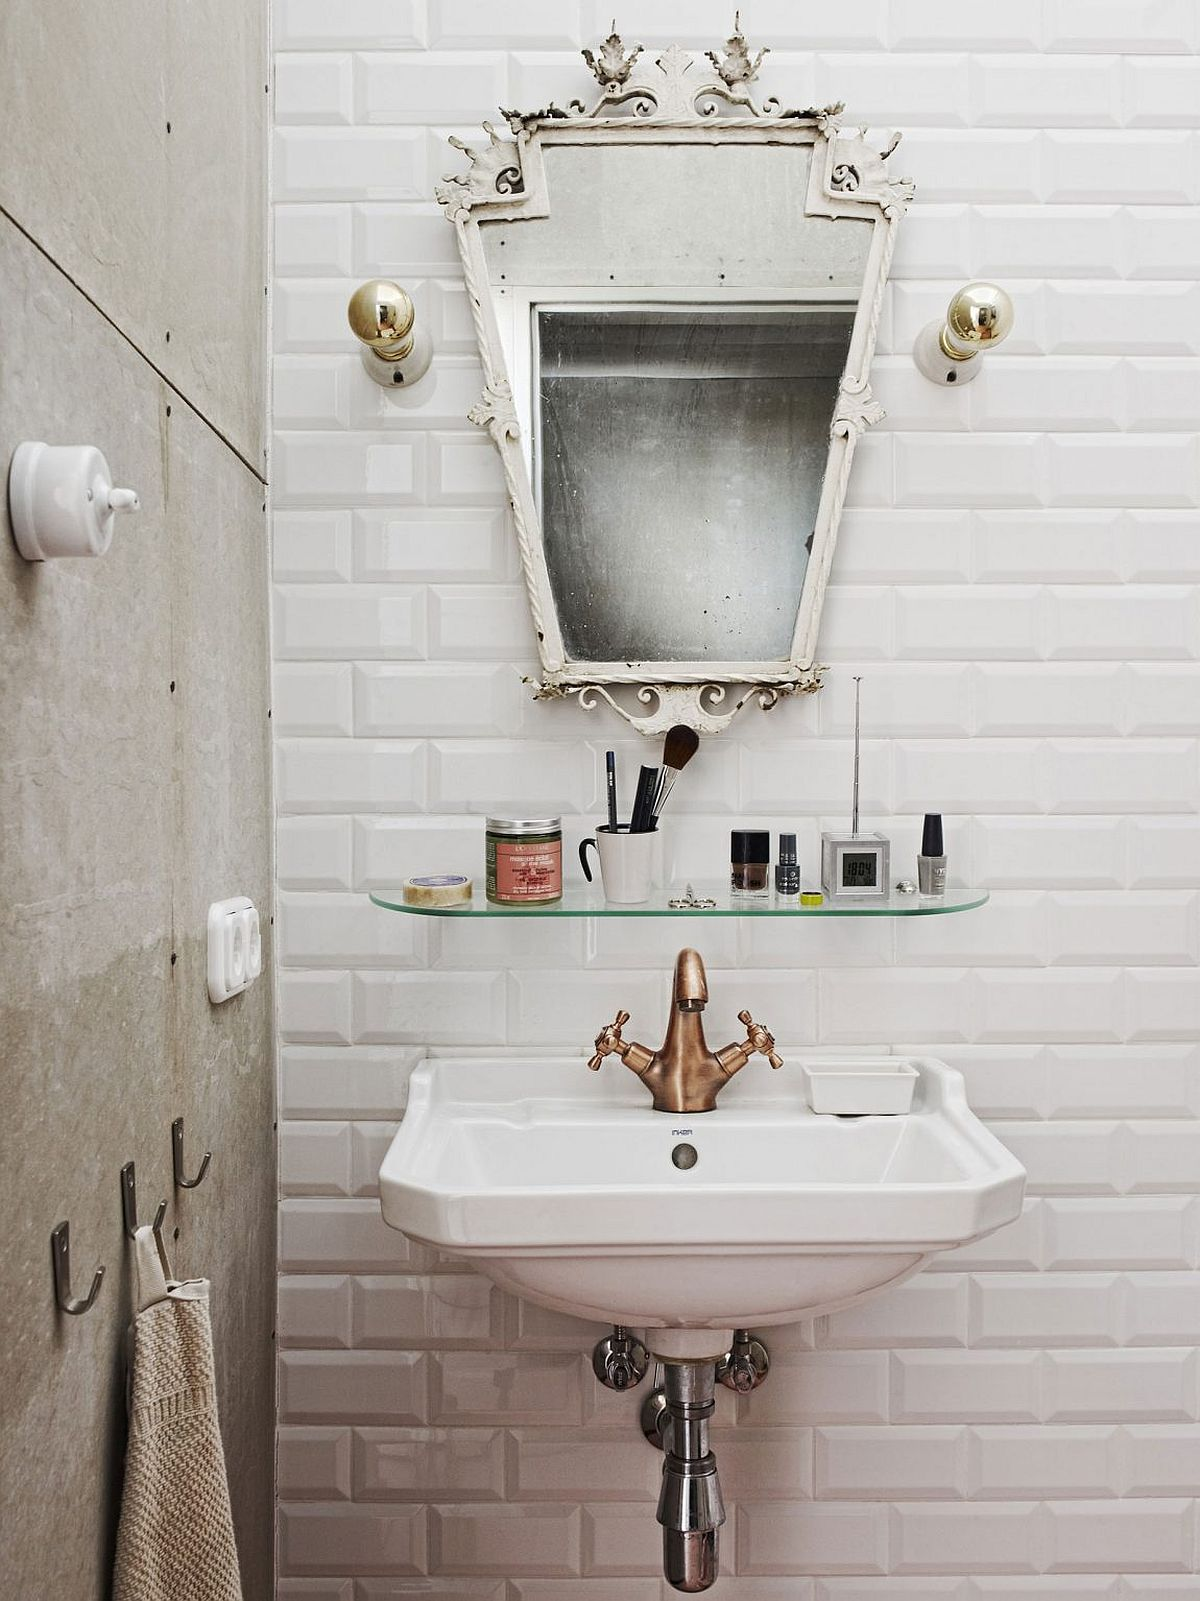 A touch of vintage and retro for the tiny industrial Budapest loft bathroom